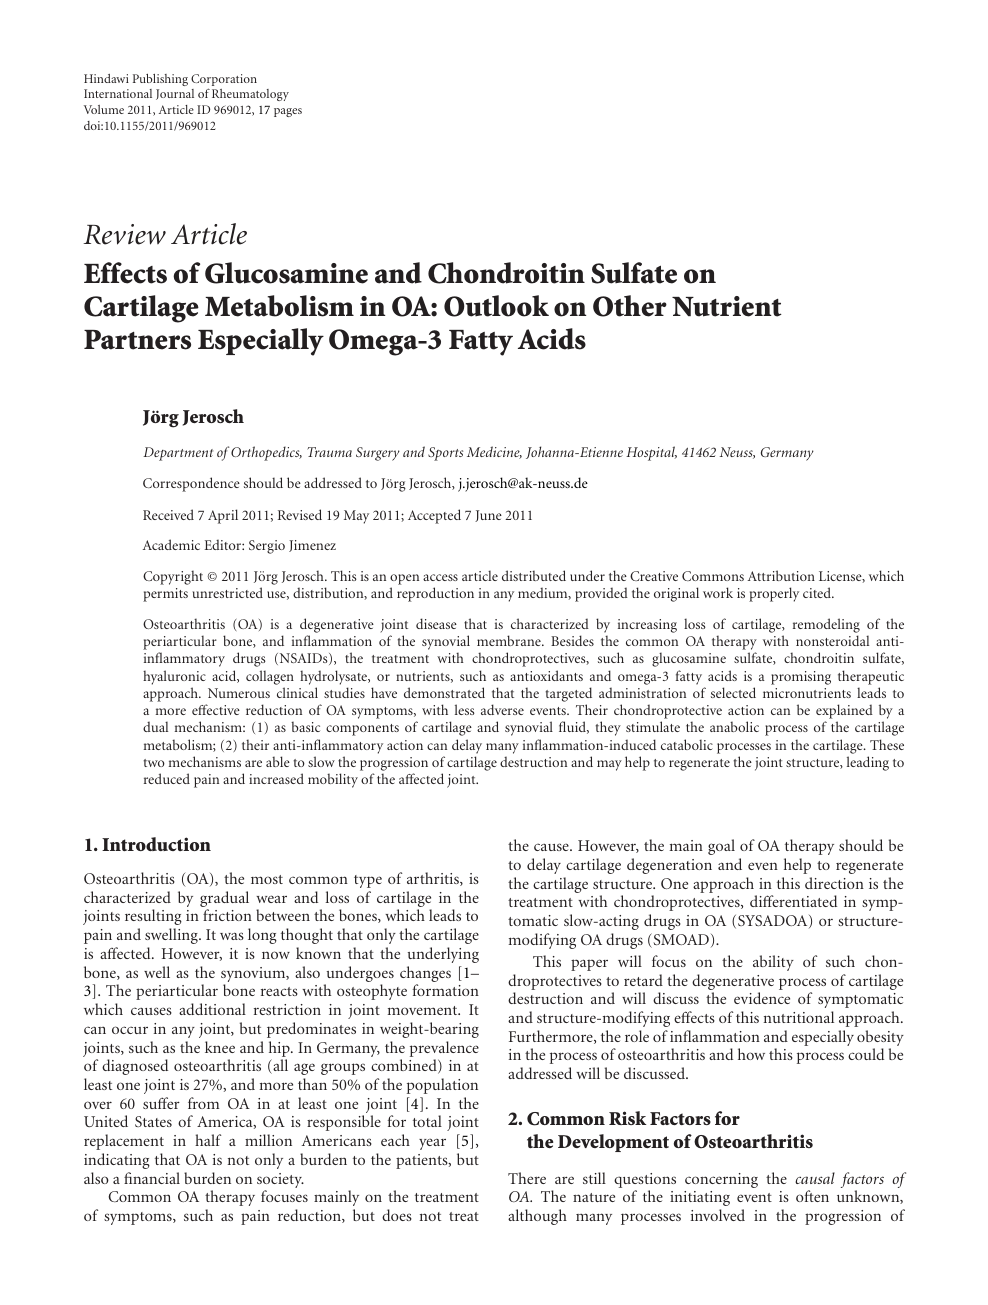 Effects of Glucosamine and Chondroitin Sulfate on Cartilage